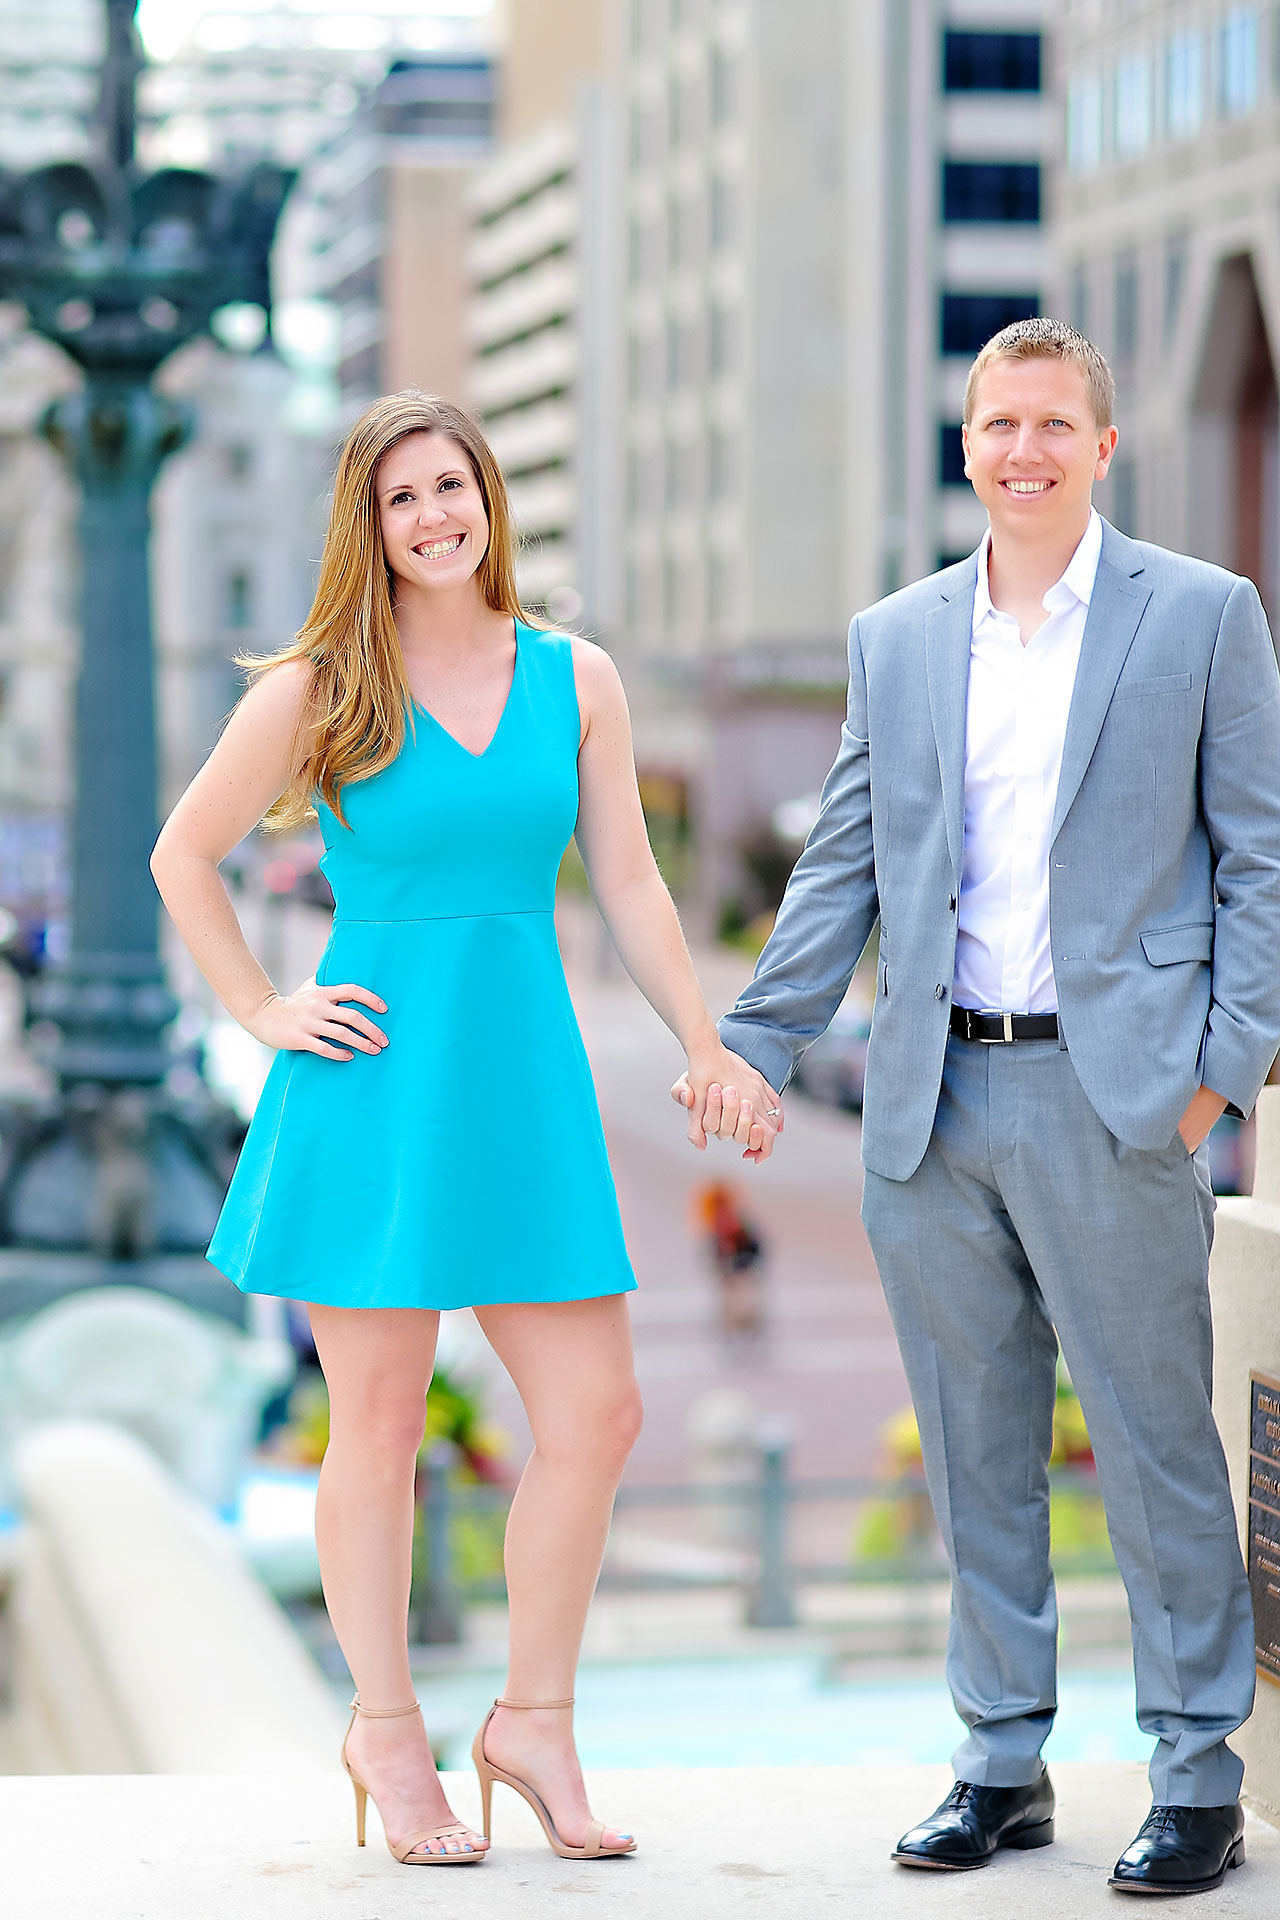 Chelsea Jeff Downtown Indy Engagement Session 057